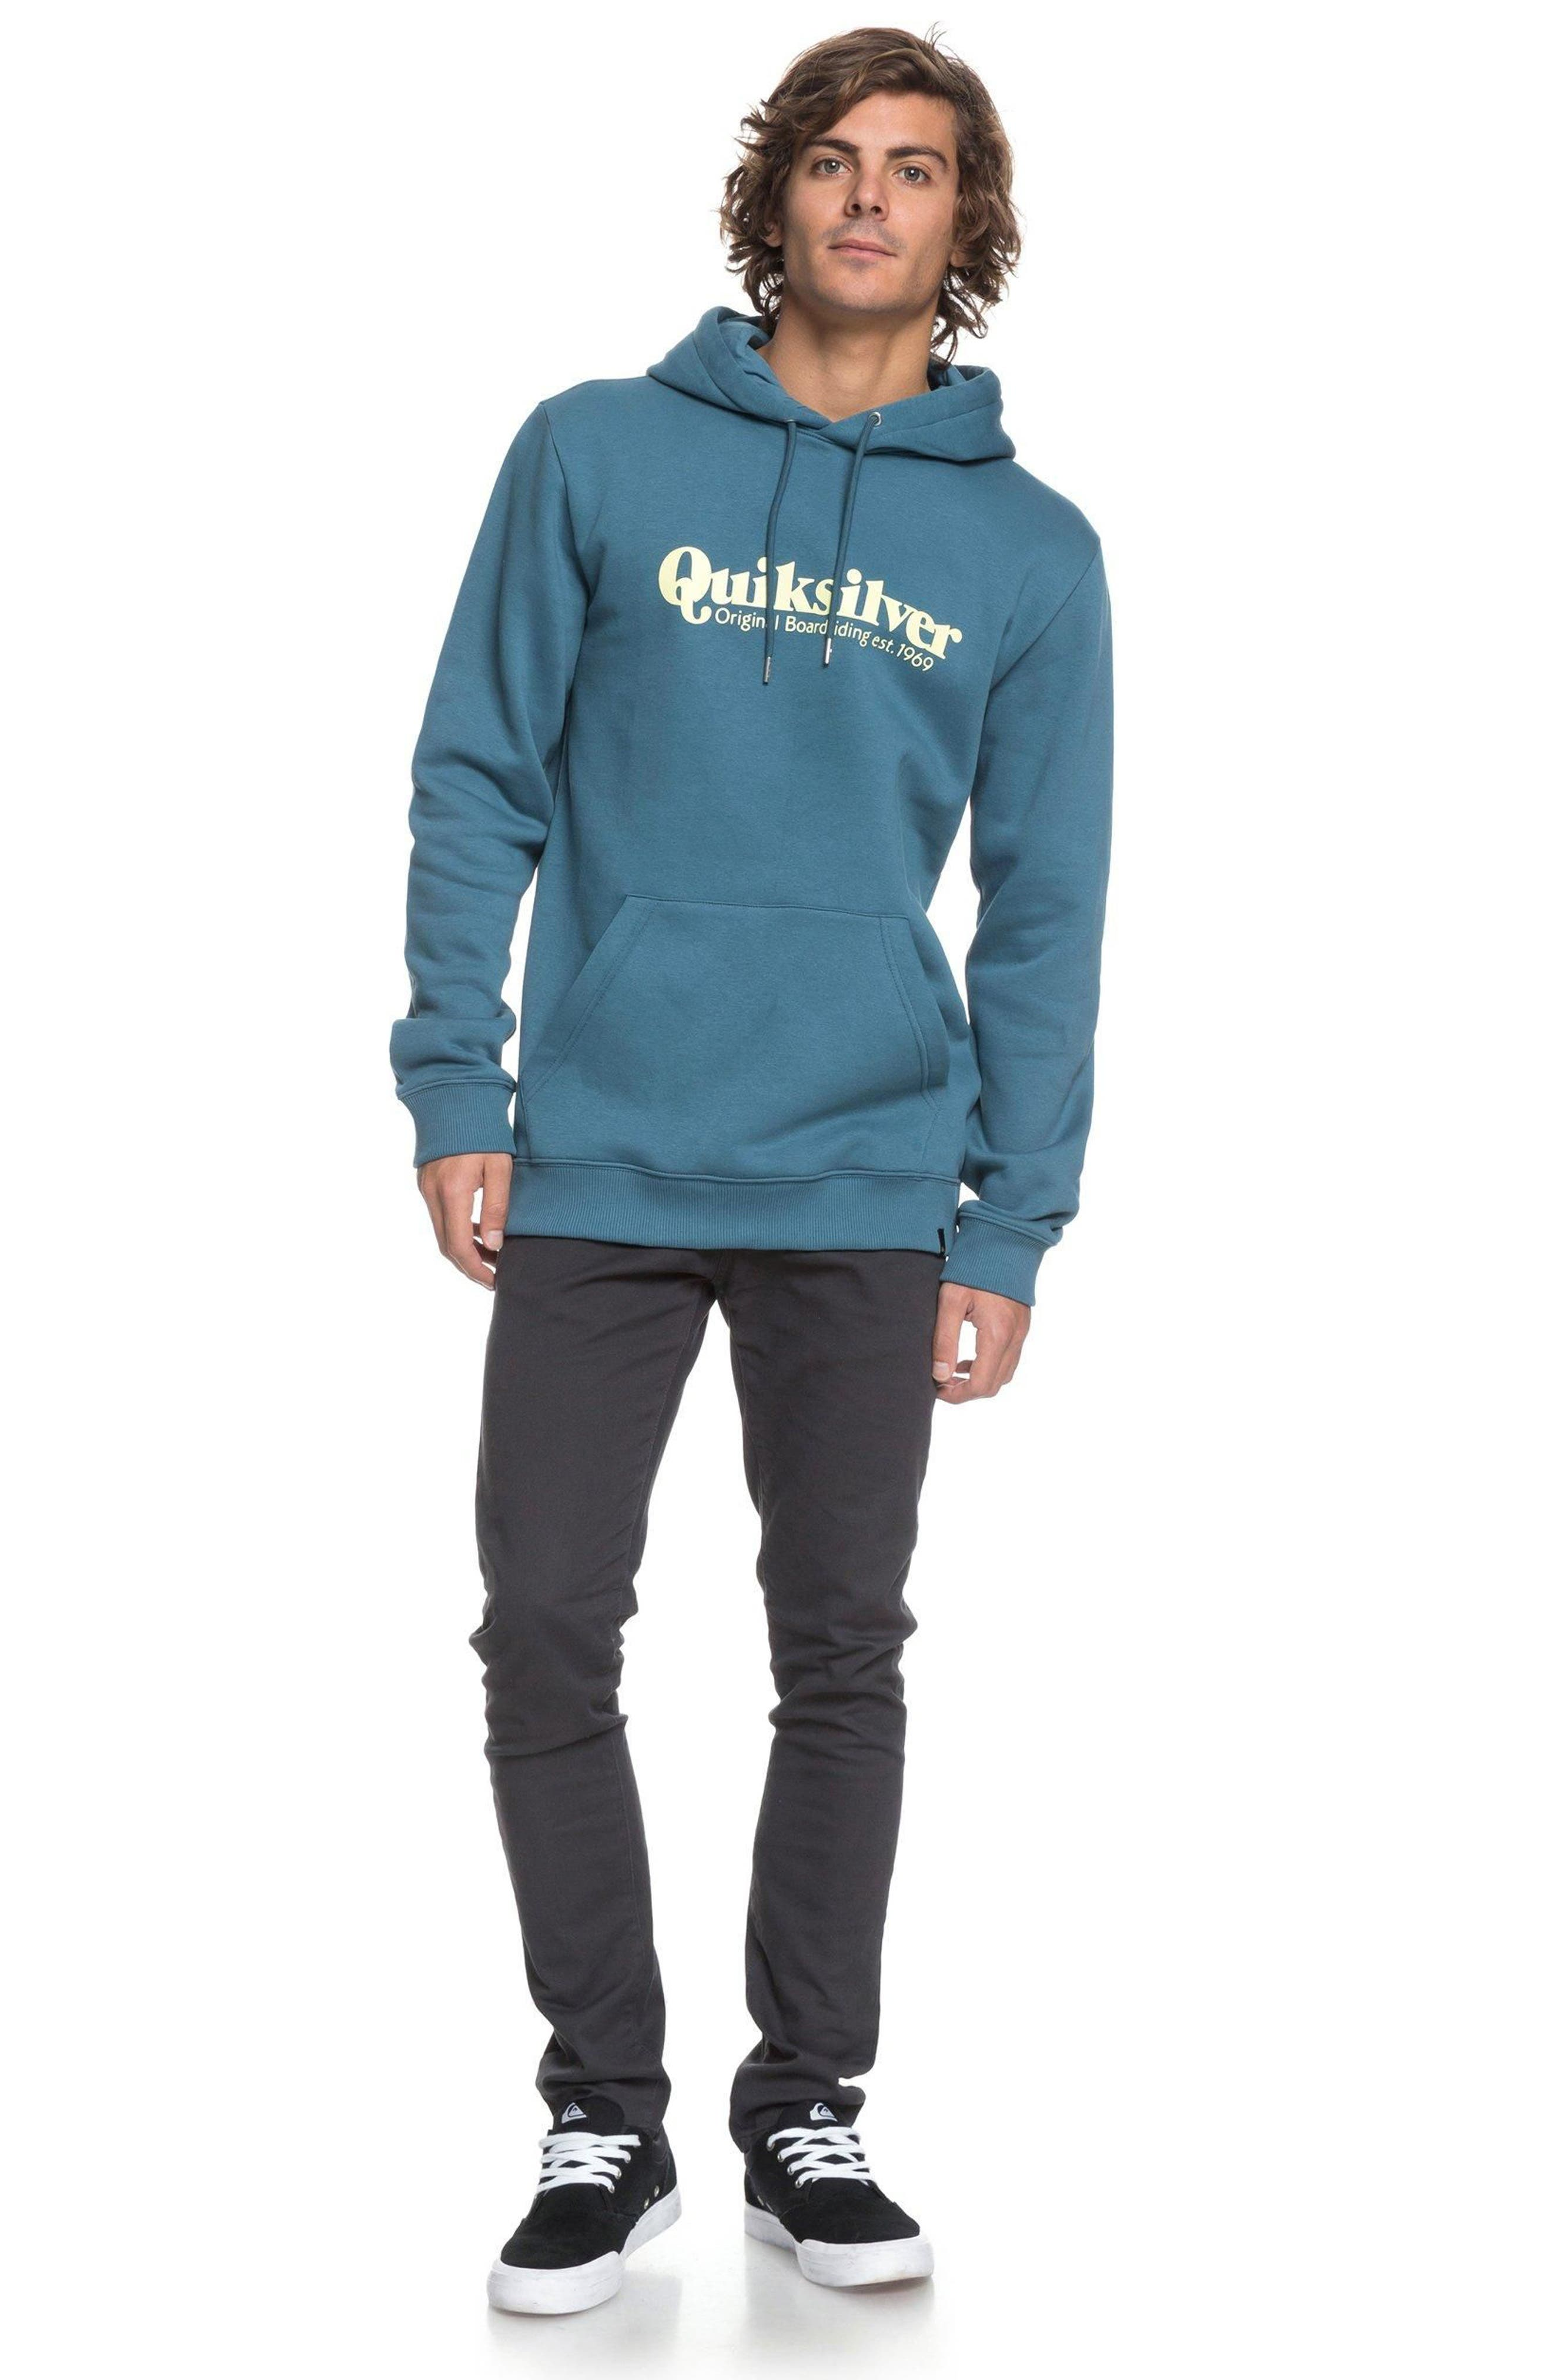 Twin Fin Mates Hoodie,                             Alternate thumbnail 3, color,                             440